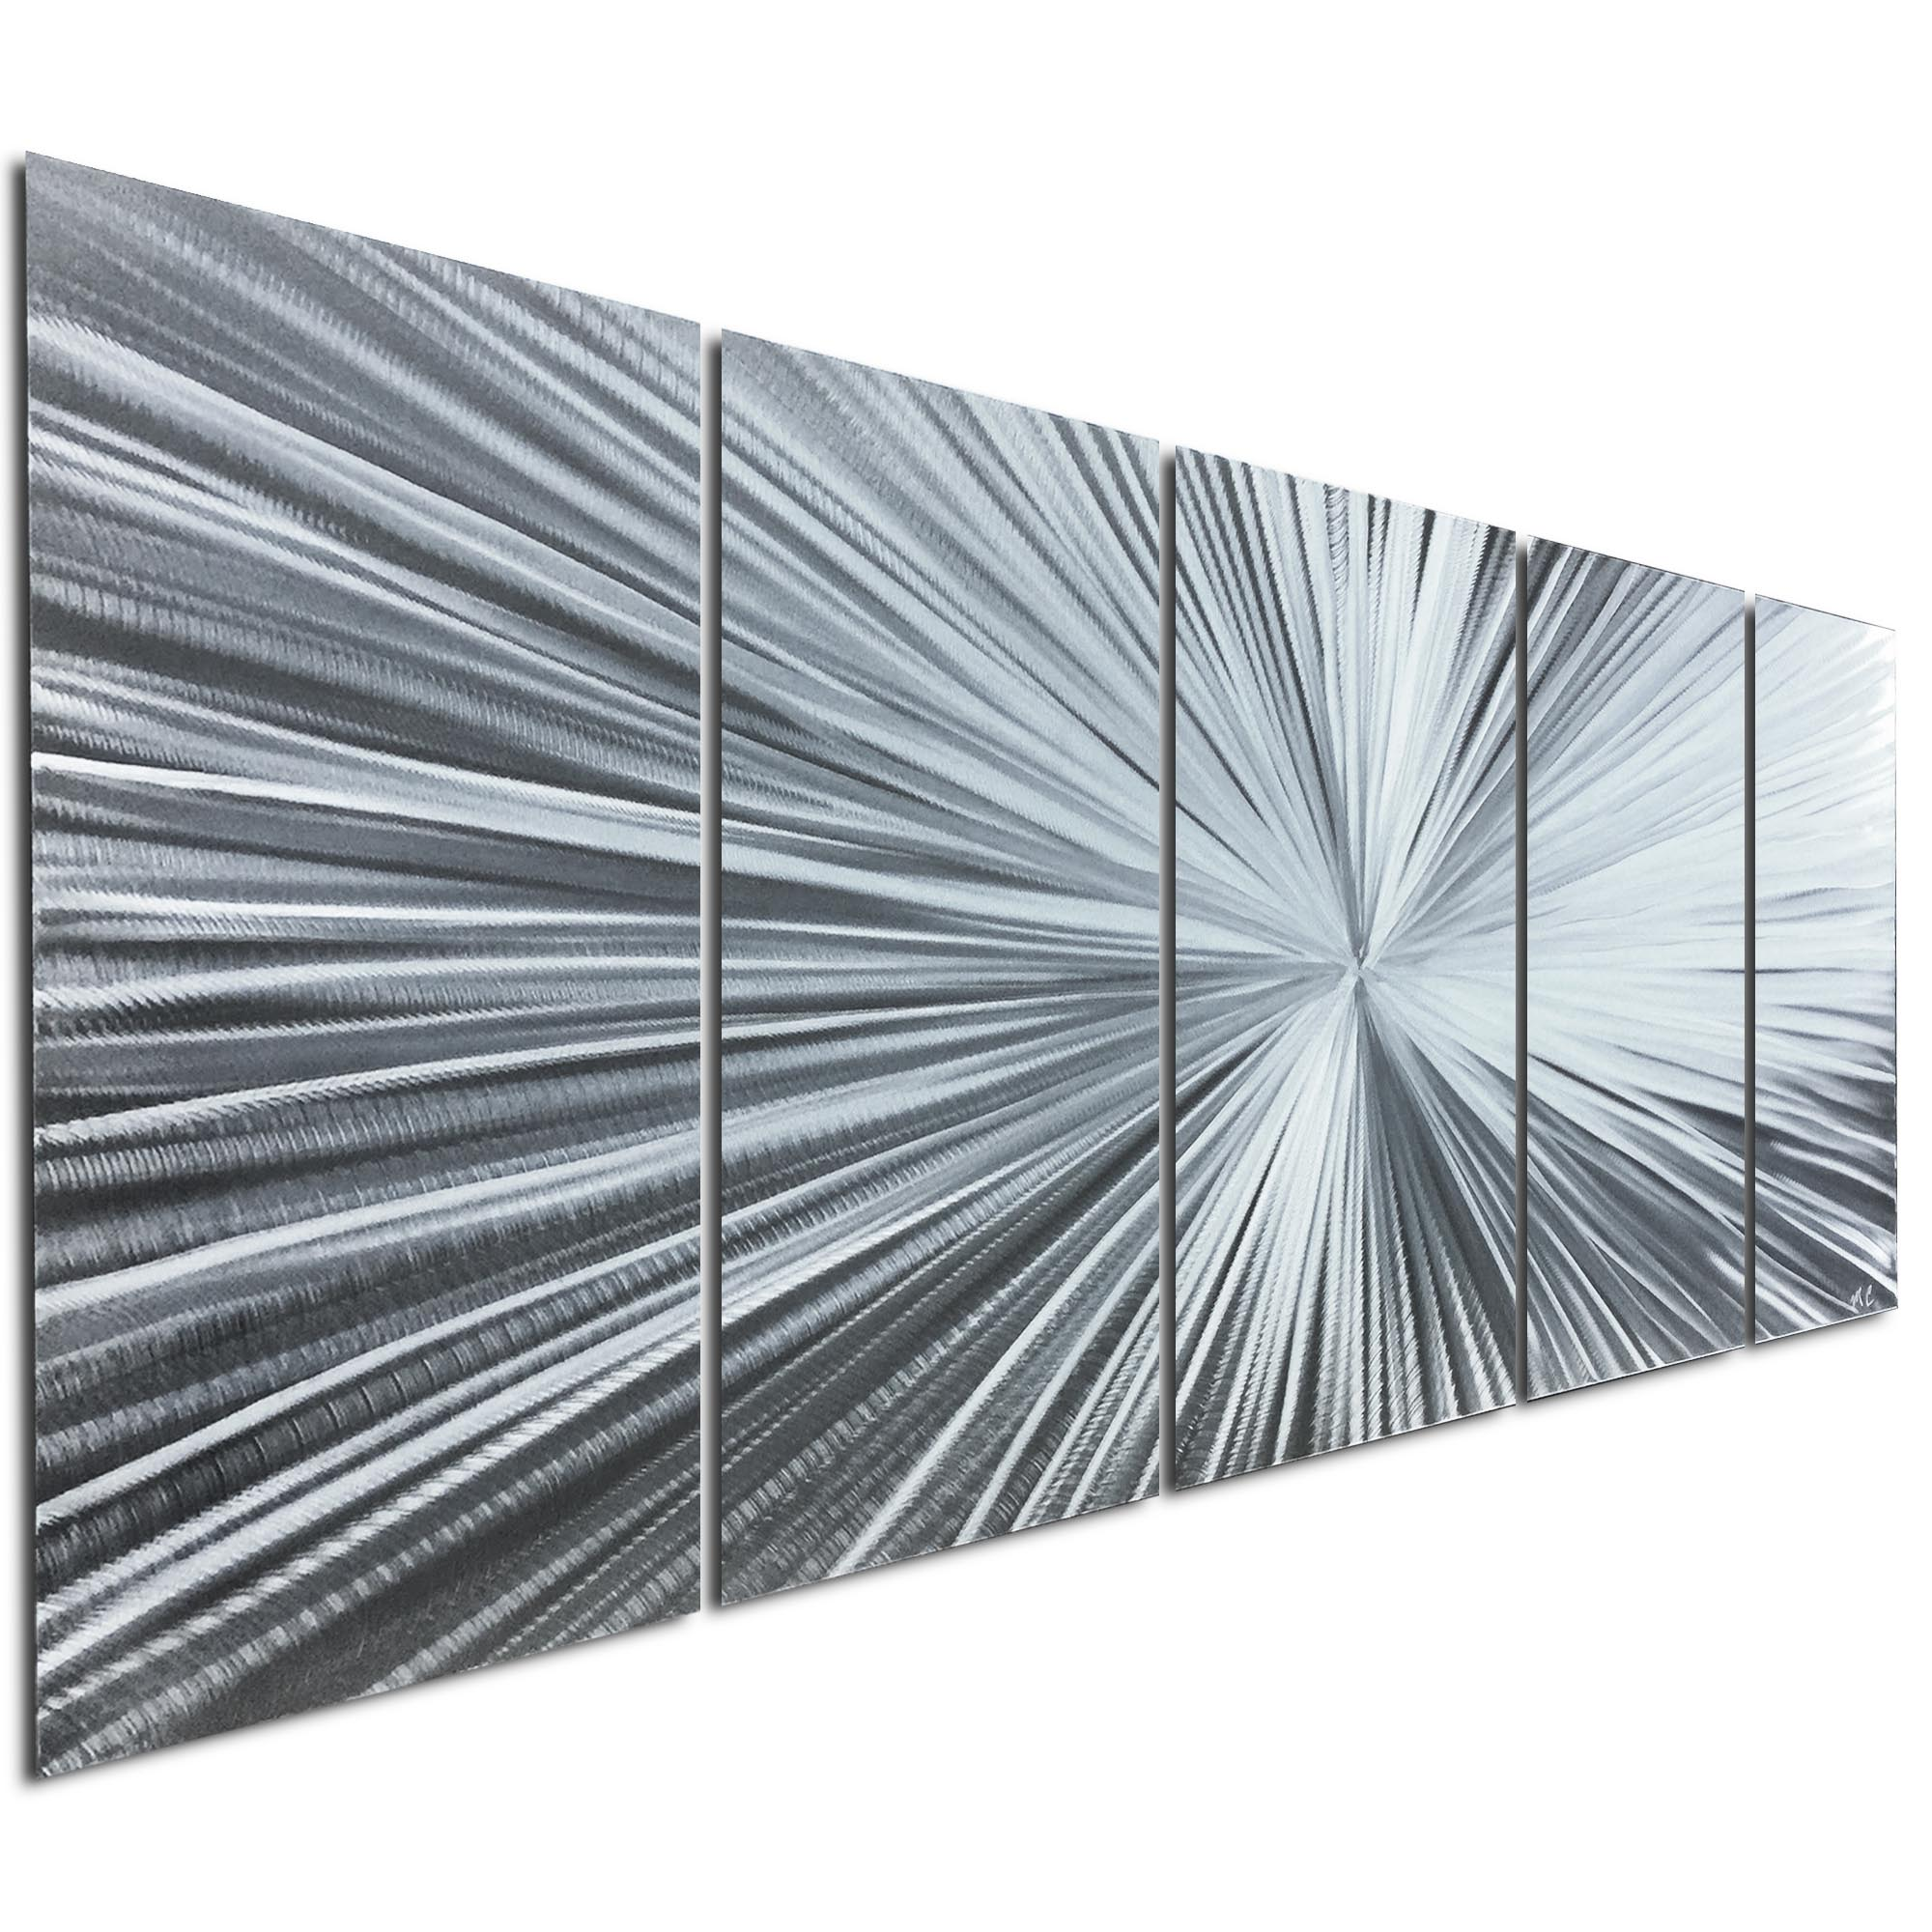 The Light by Helena Martin - Starburst Metal Art on Natural Aluminum - Image 2